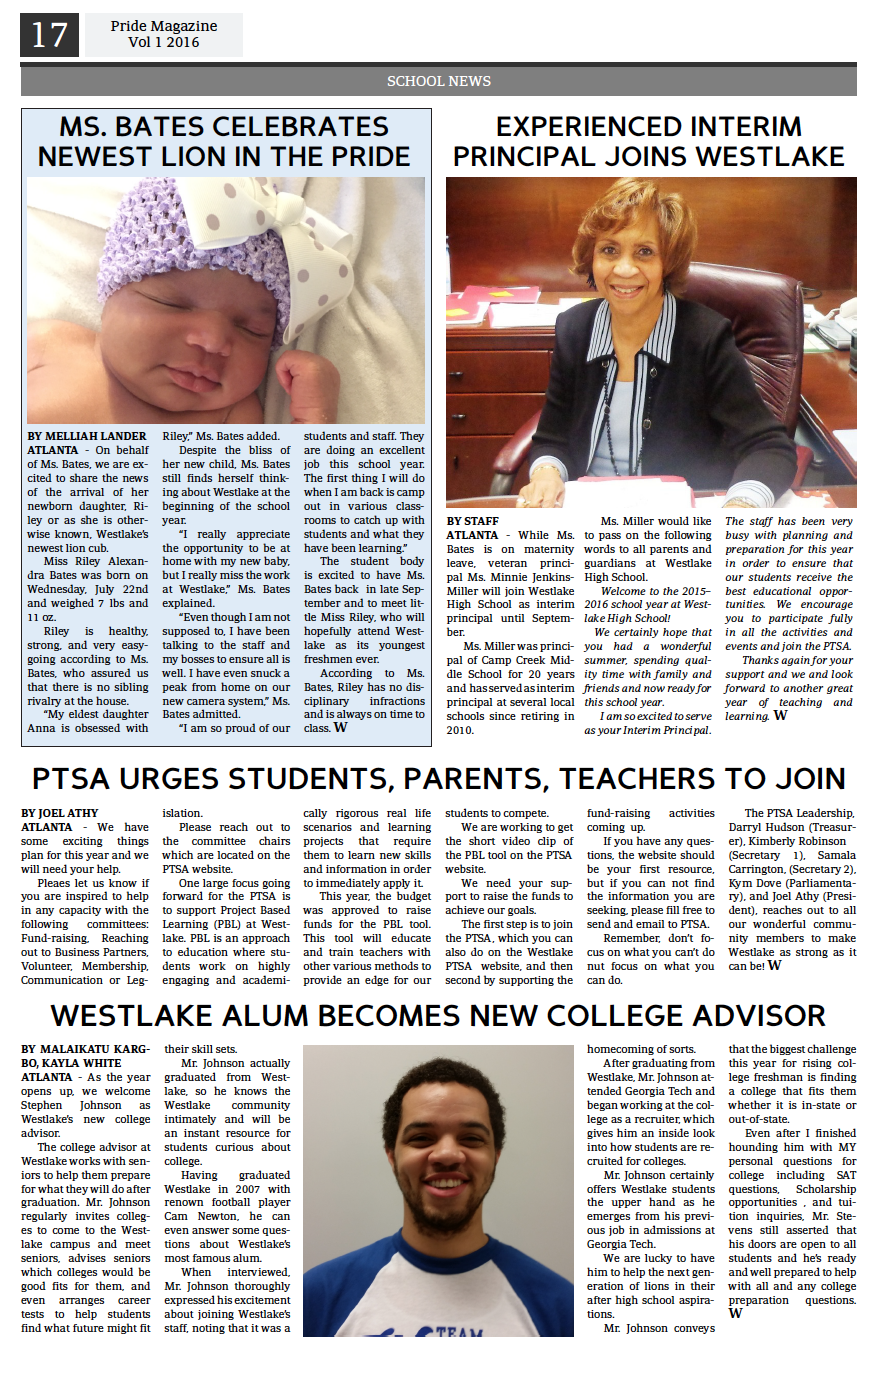 Newspaper Preview 017.png